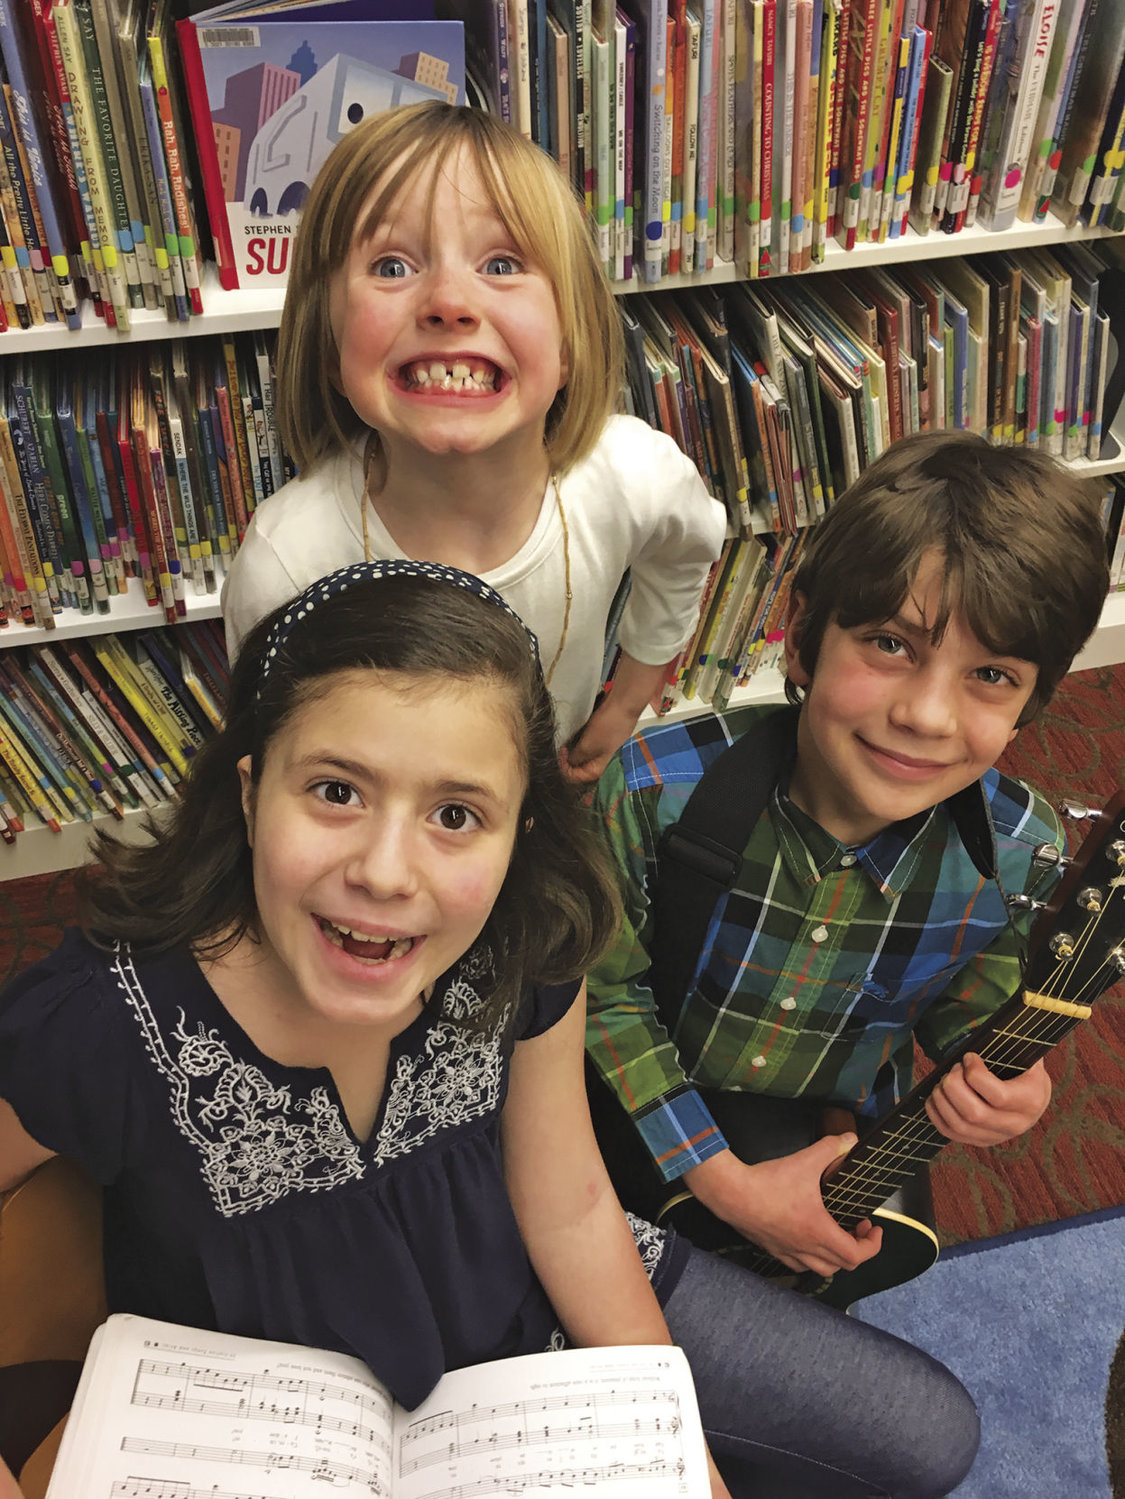 Port Townsend Children's Library Choir is back for another year under the direction of Phina Pipia. Rehearsals start Feb. 27. Pictured are Dare Bailey, Lila Morgan (center, top) and Tristan Erickson. Photo courtesy of Phina Pipia